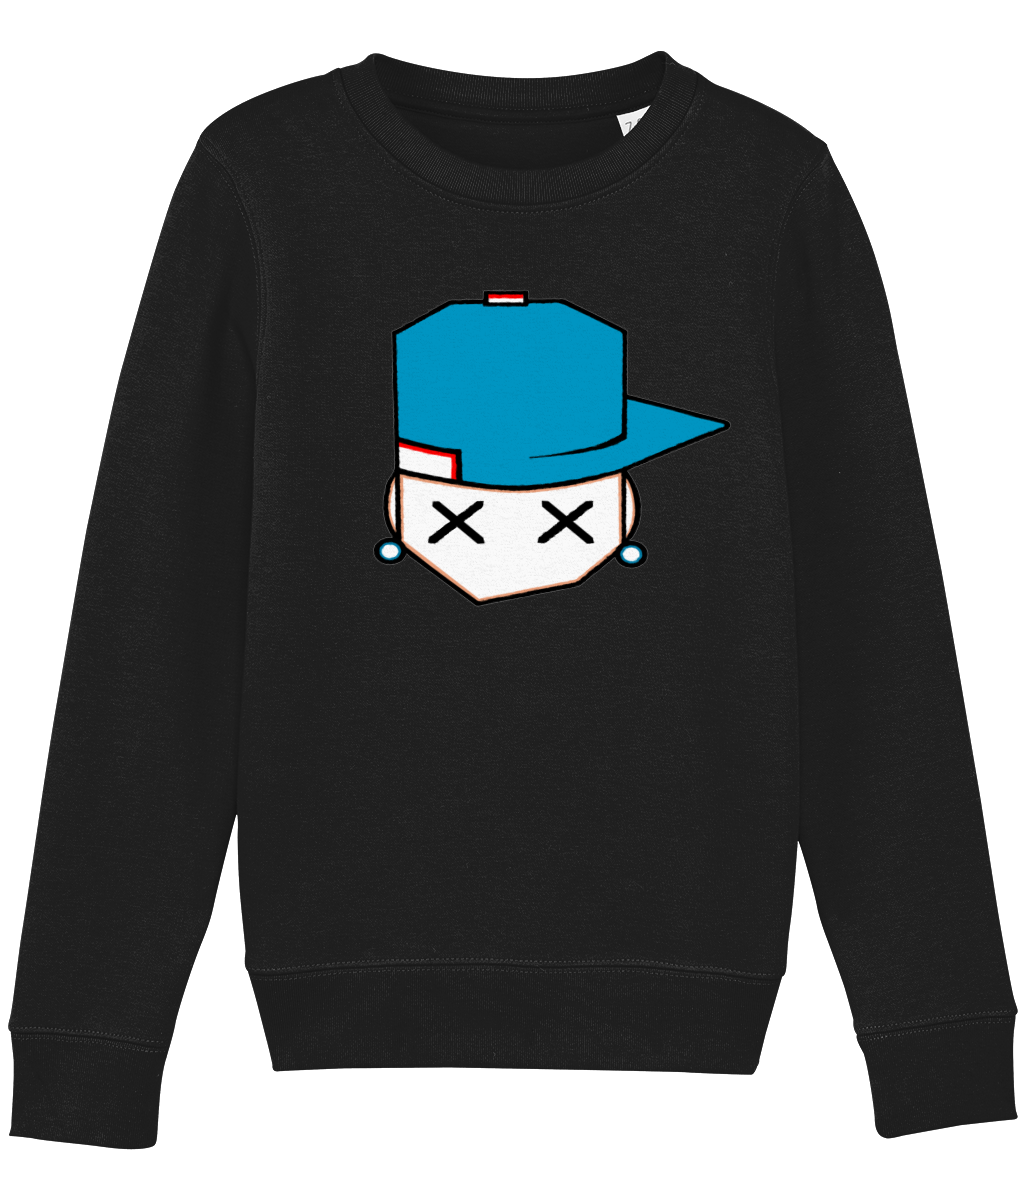 kids sweatshirt Mini Changer 02 original blue cap